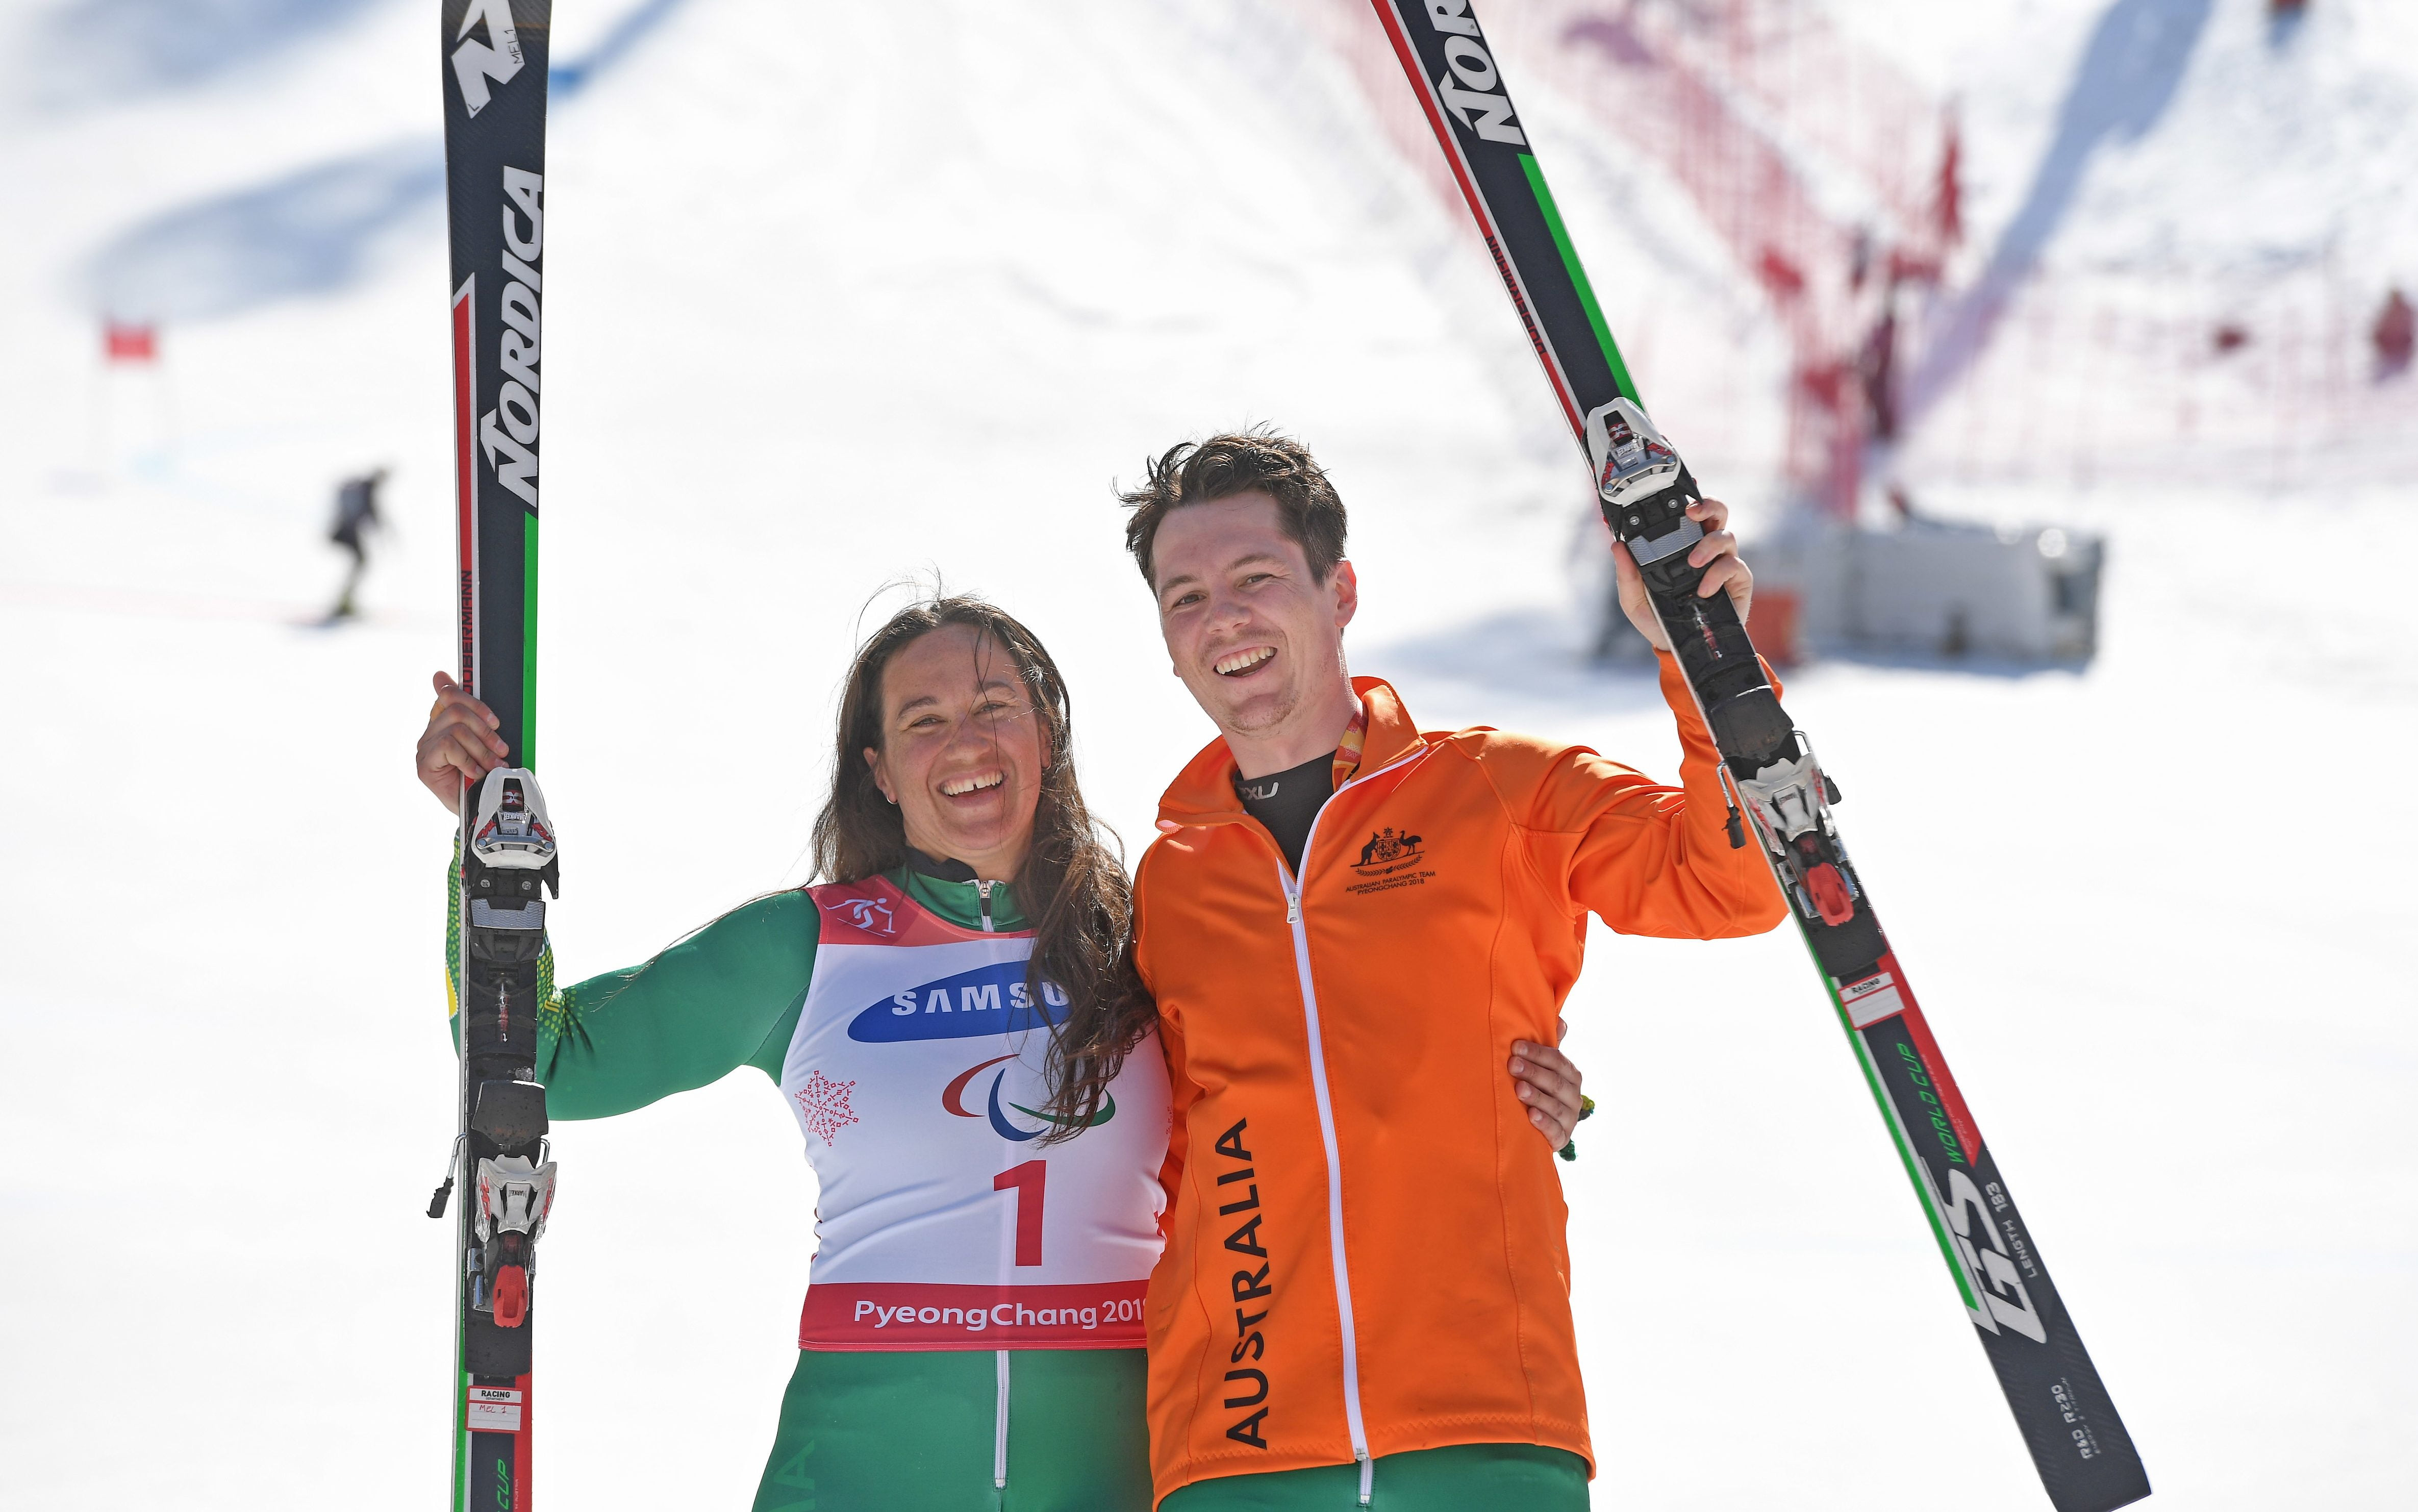 Perrine backs up her maiden Paralympic medal with another 24 hours later